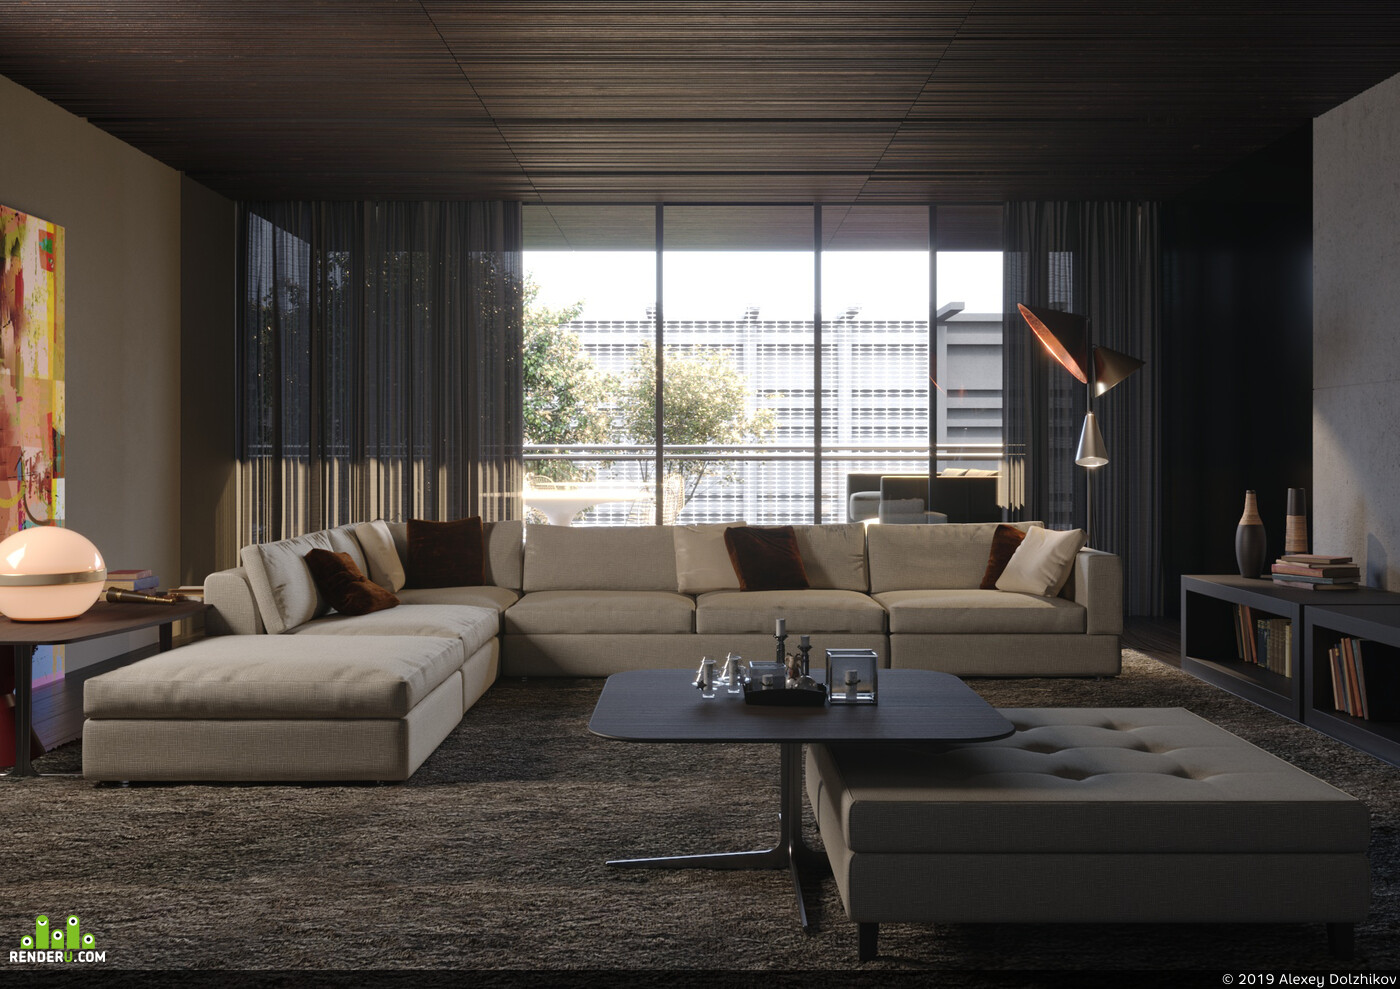 Interior visualization, RENDER 3D VISUALIZATION, 3ds max, Corona Renderer